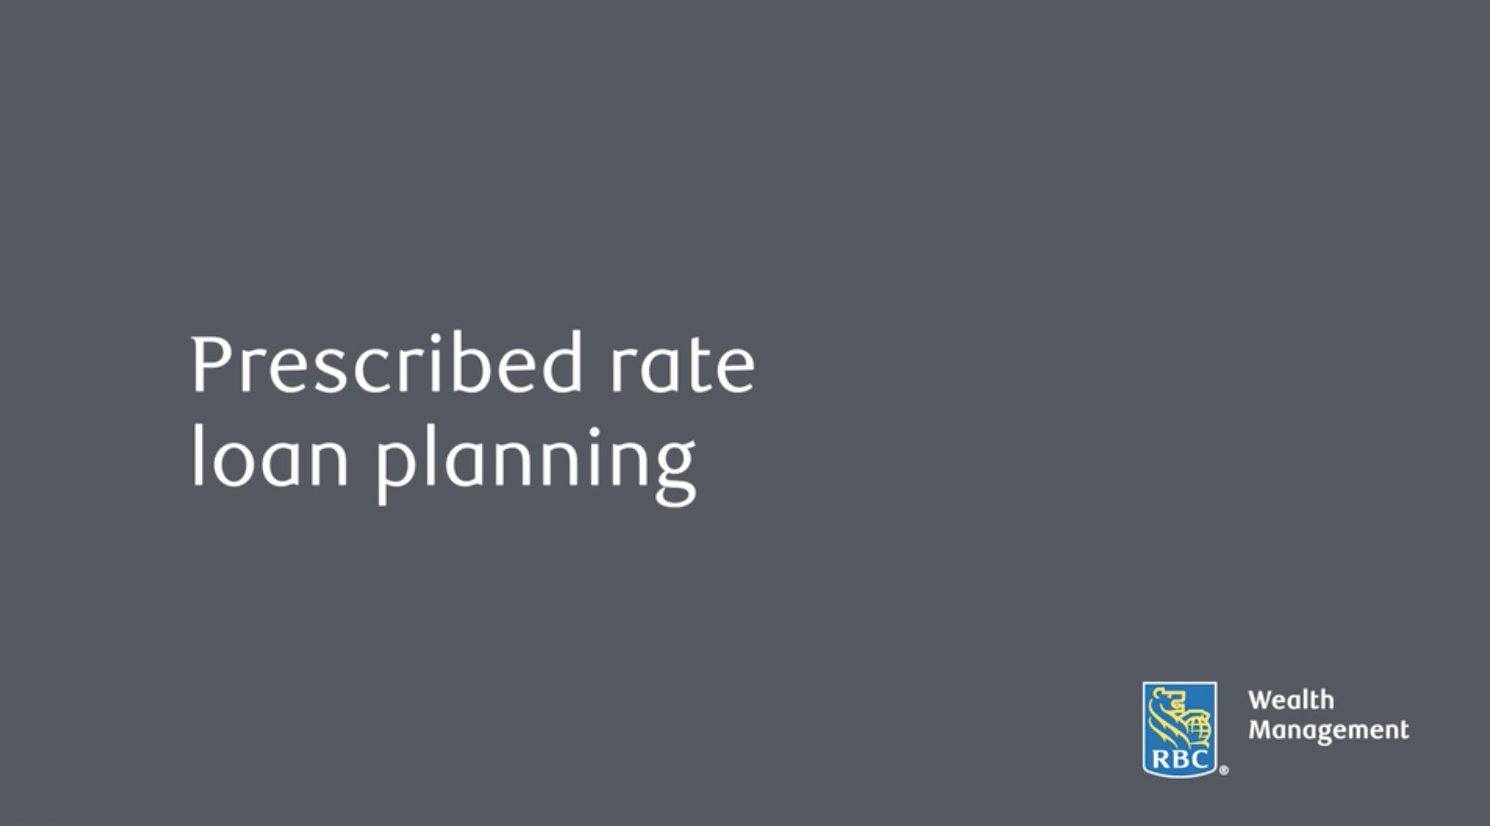 Prescribed rate loan planning